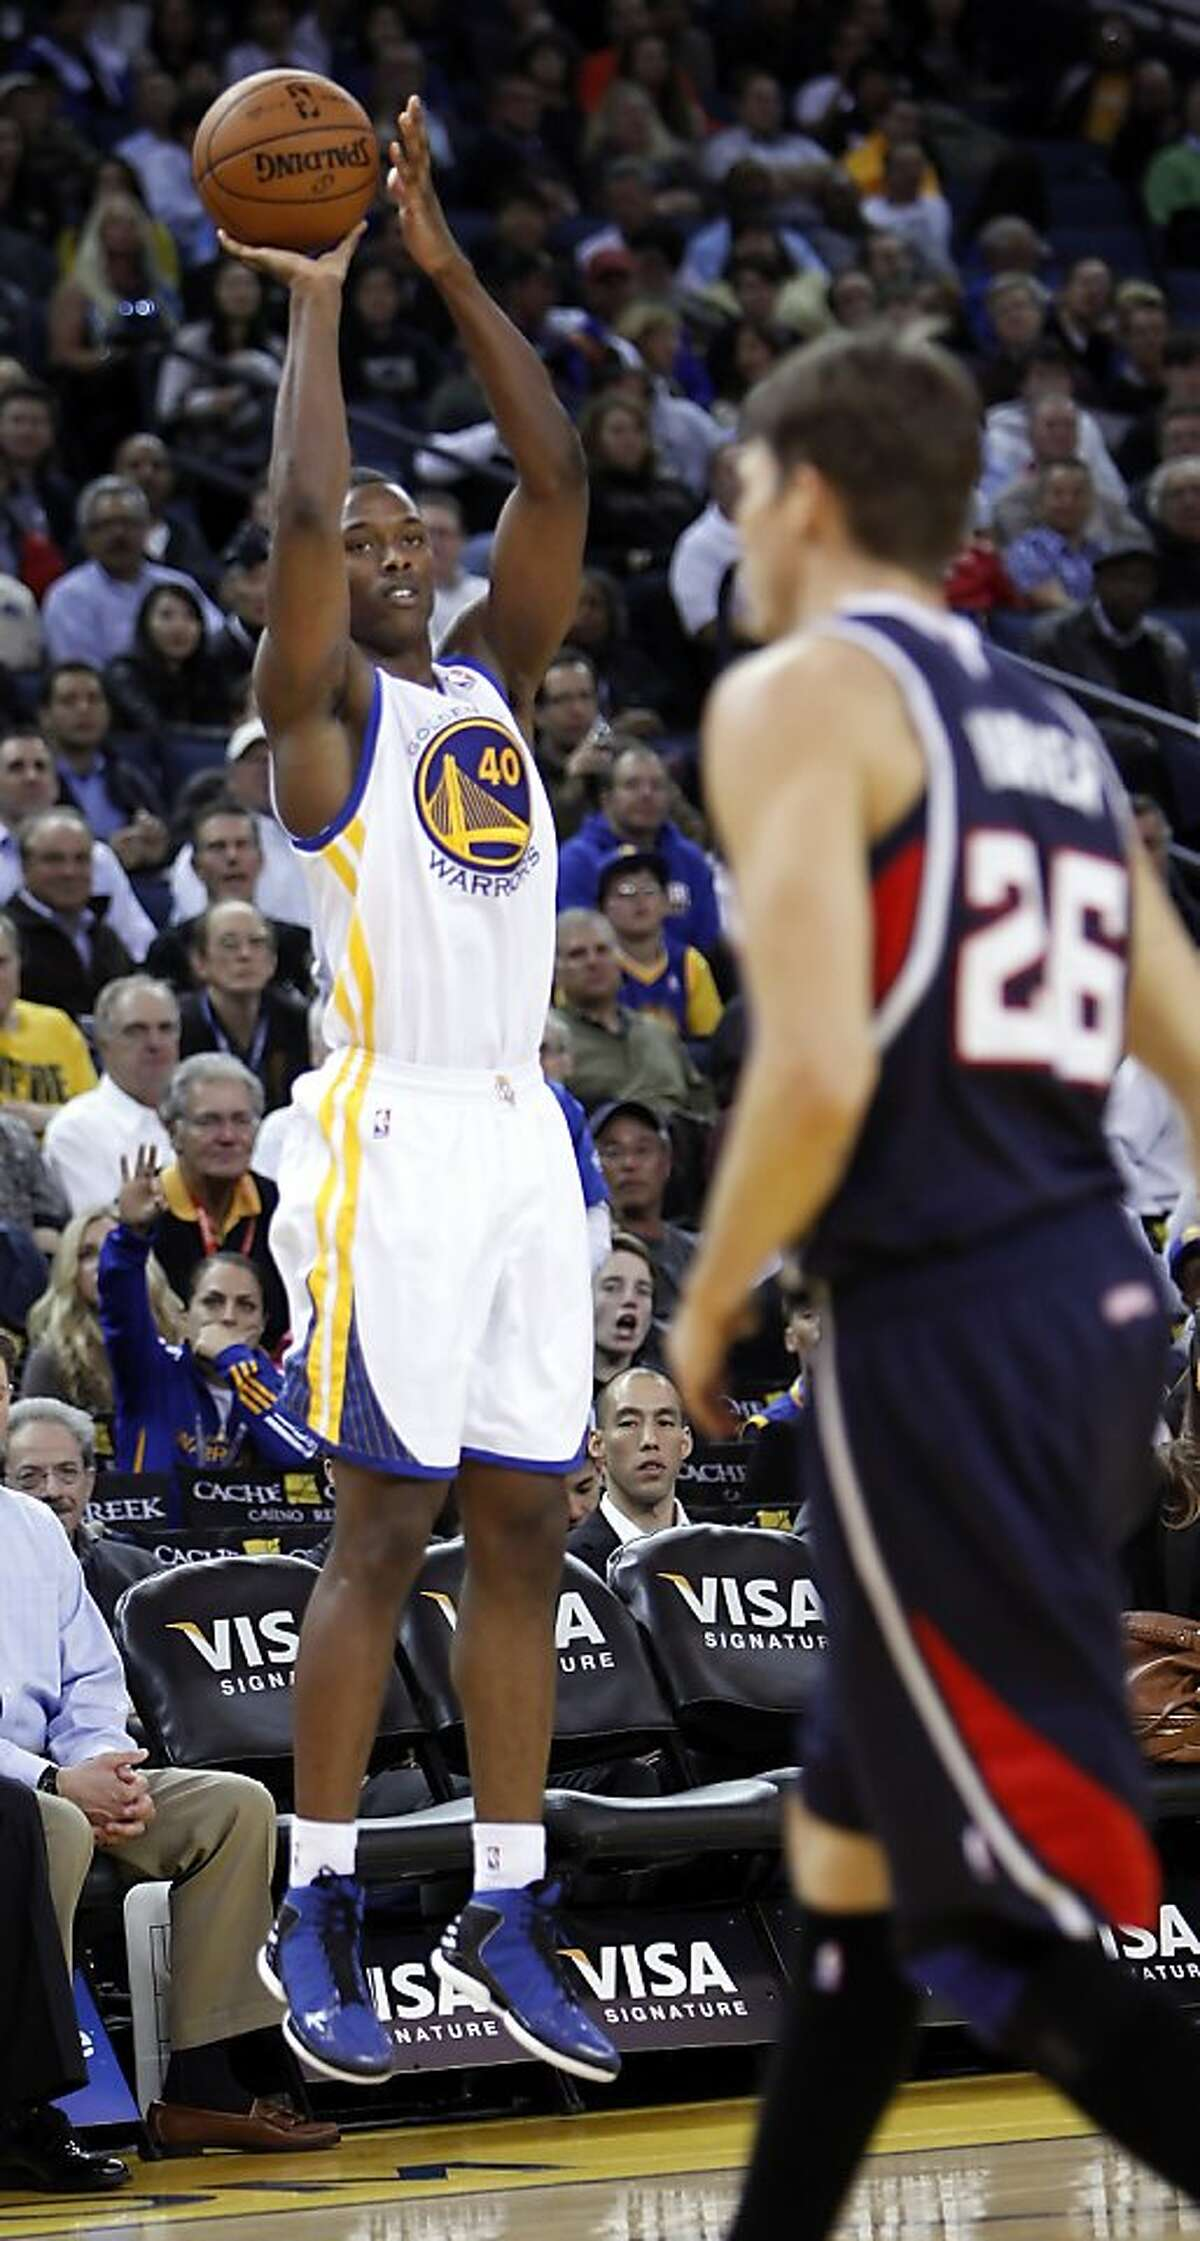 Harrison Barnes puts up a shot in the first quarter as the Golden State Warriors played the Atlanta Hawks at Oracle Arena in Oakland, Calif., on Wednesday, November 14, 2012.